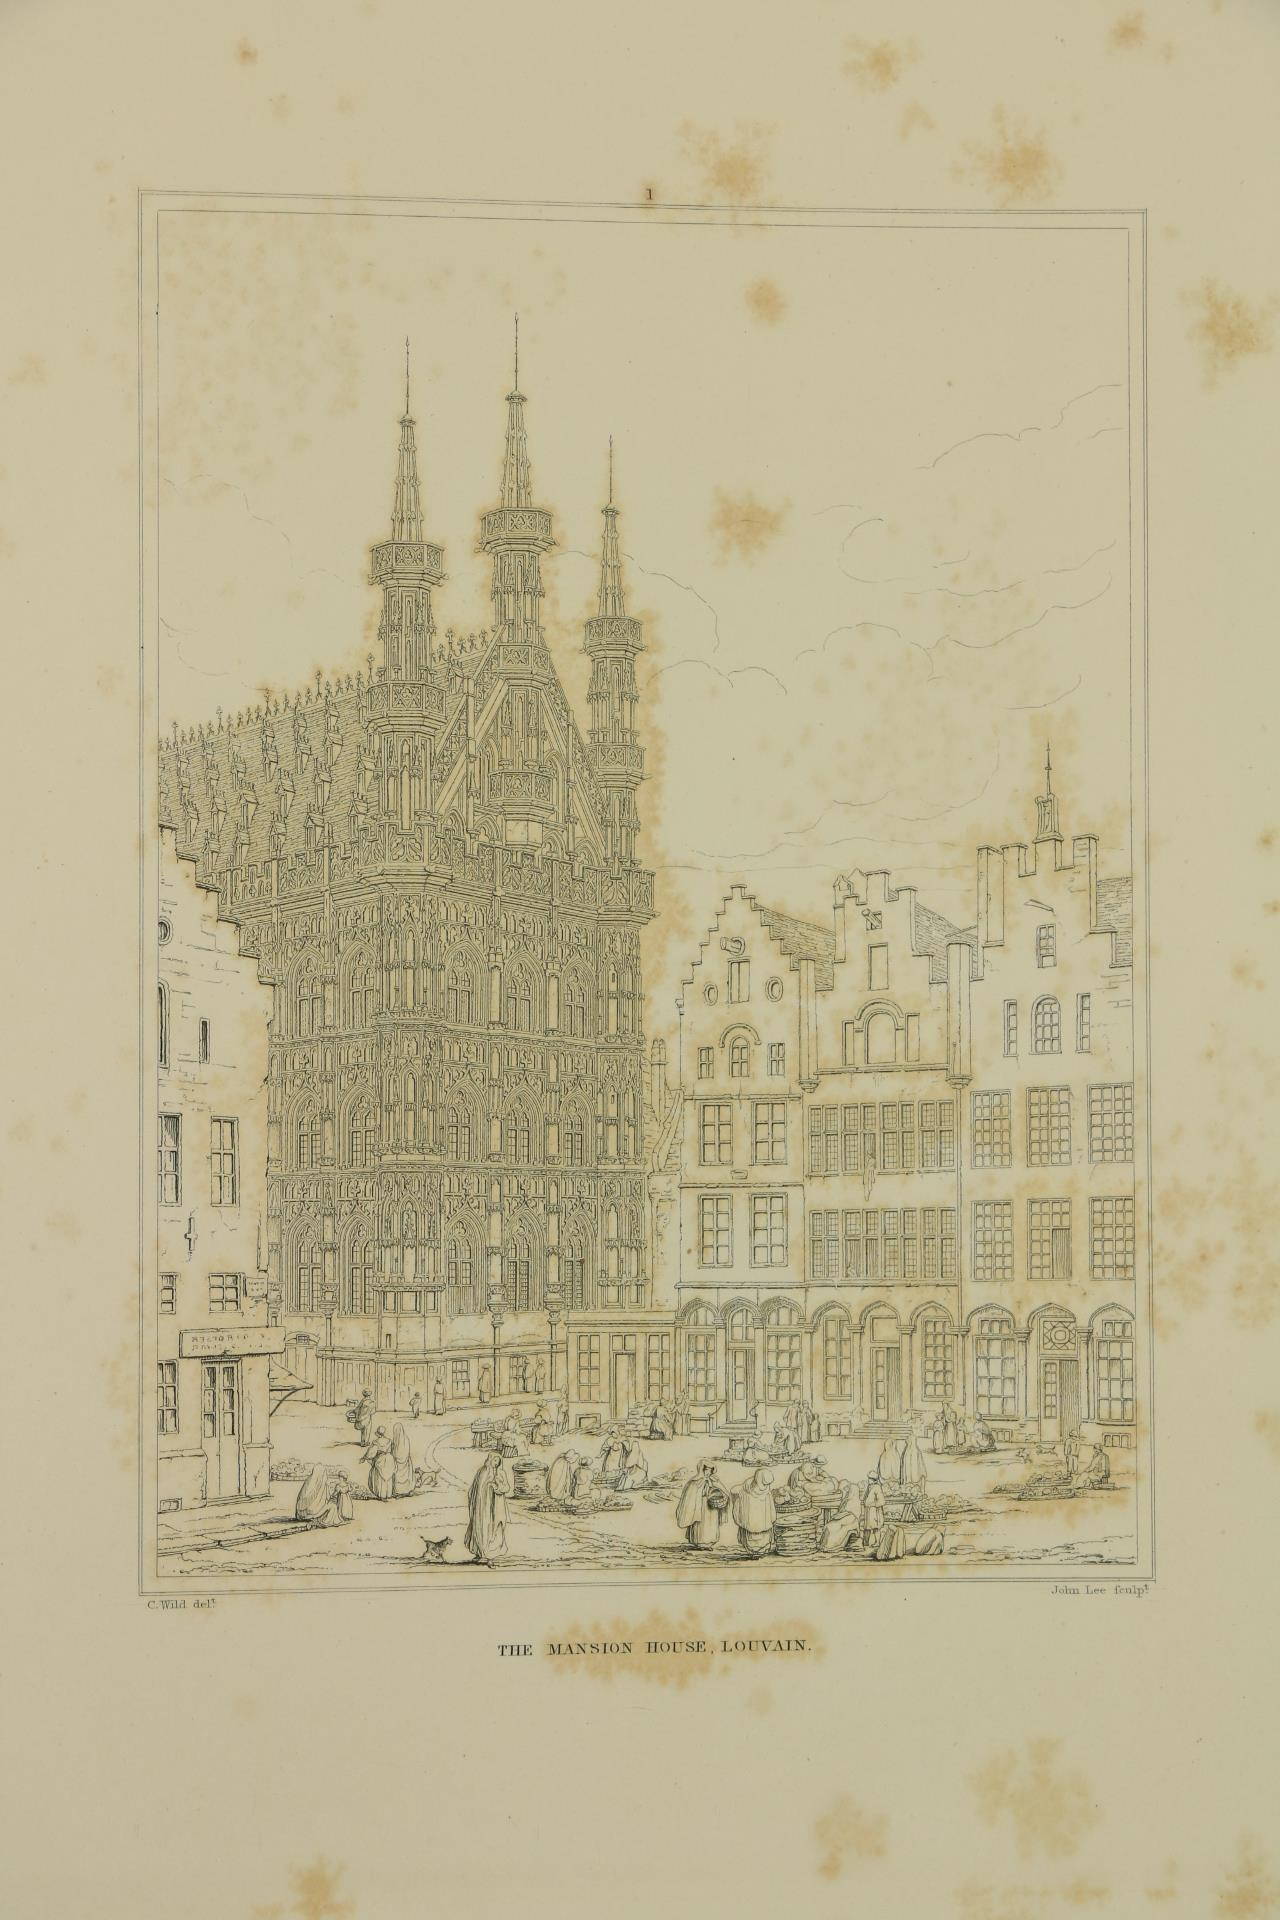 Wild (Charles)ÿSelect Examples of Architectural Grandeur in Belgium, Germany and France, Lg. folio - Image 6 of 6